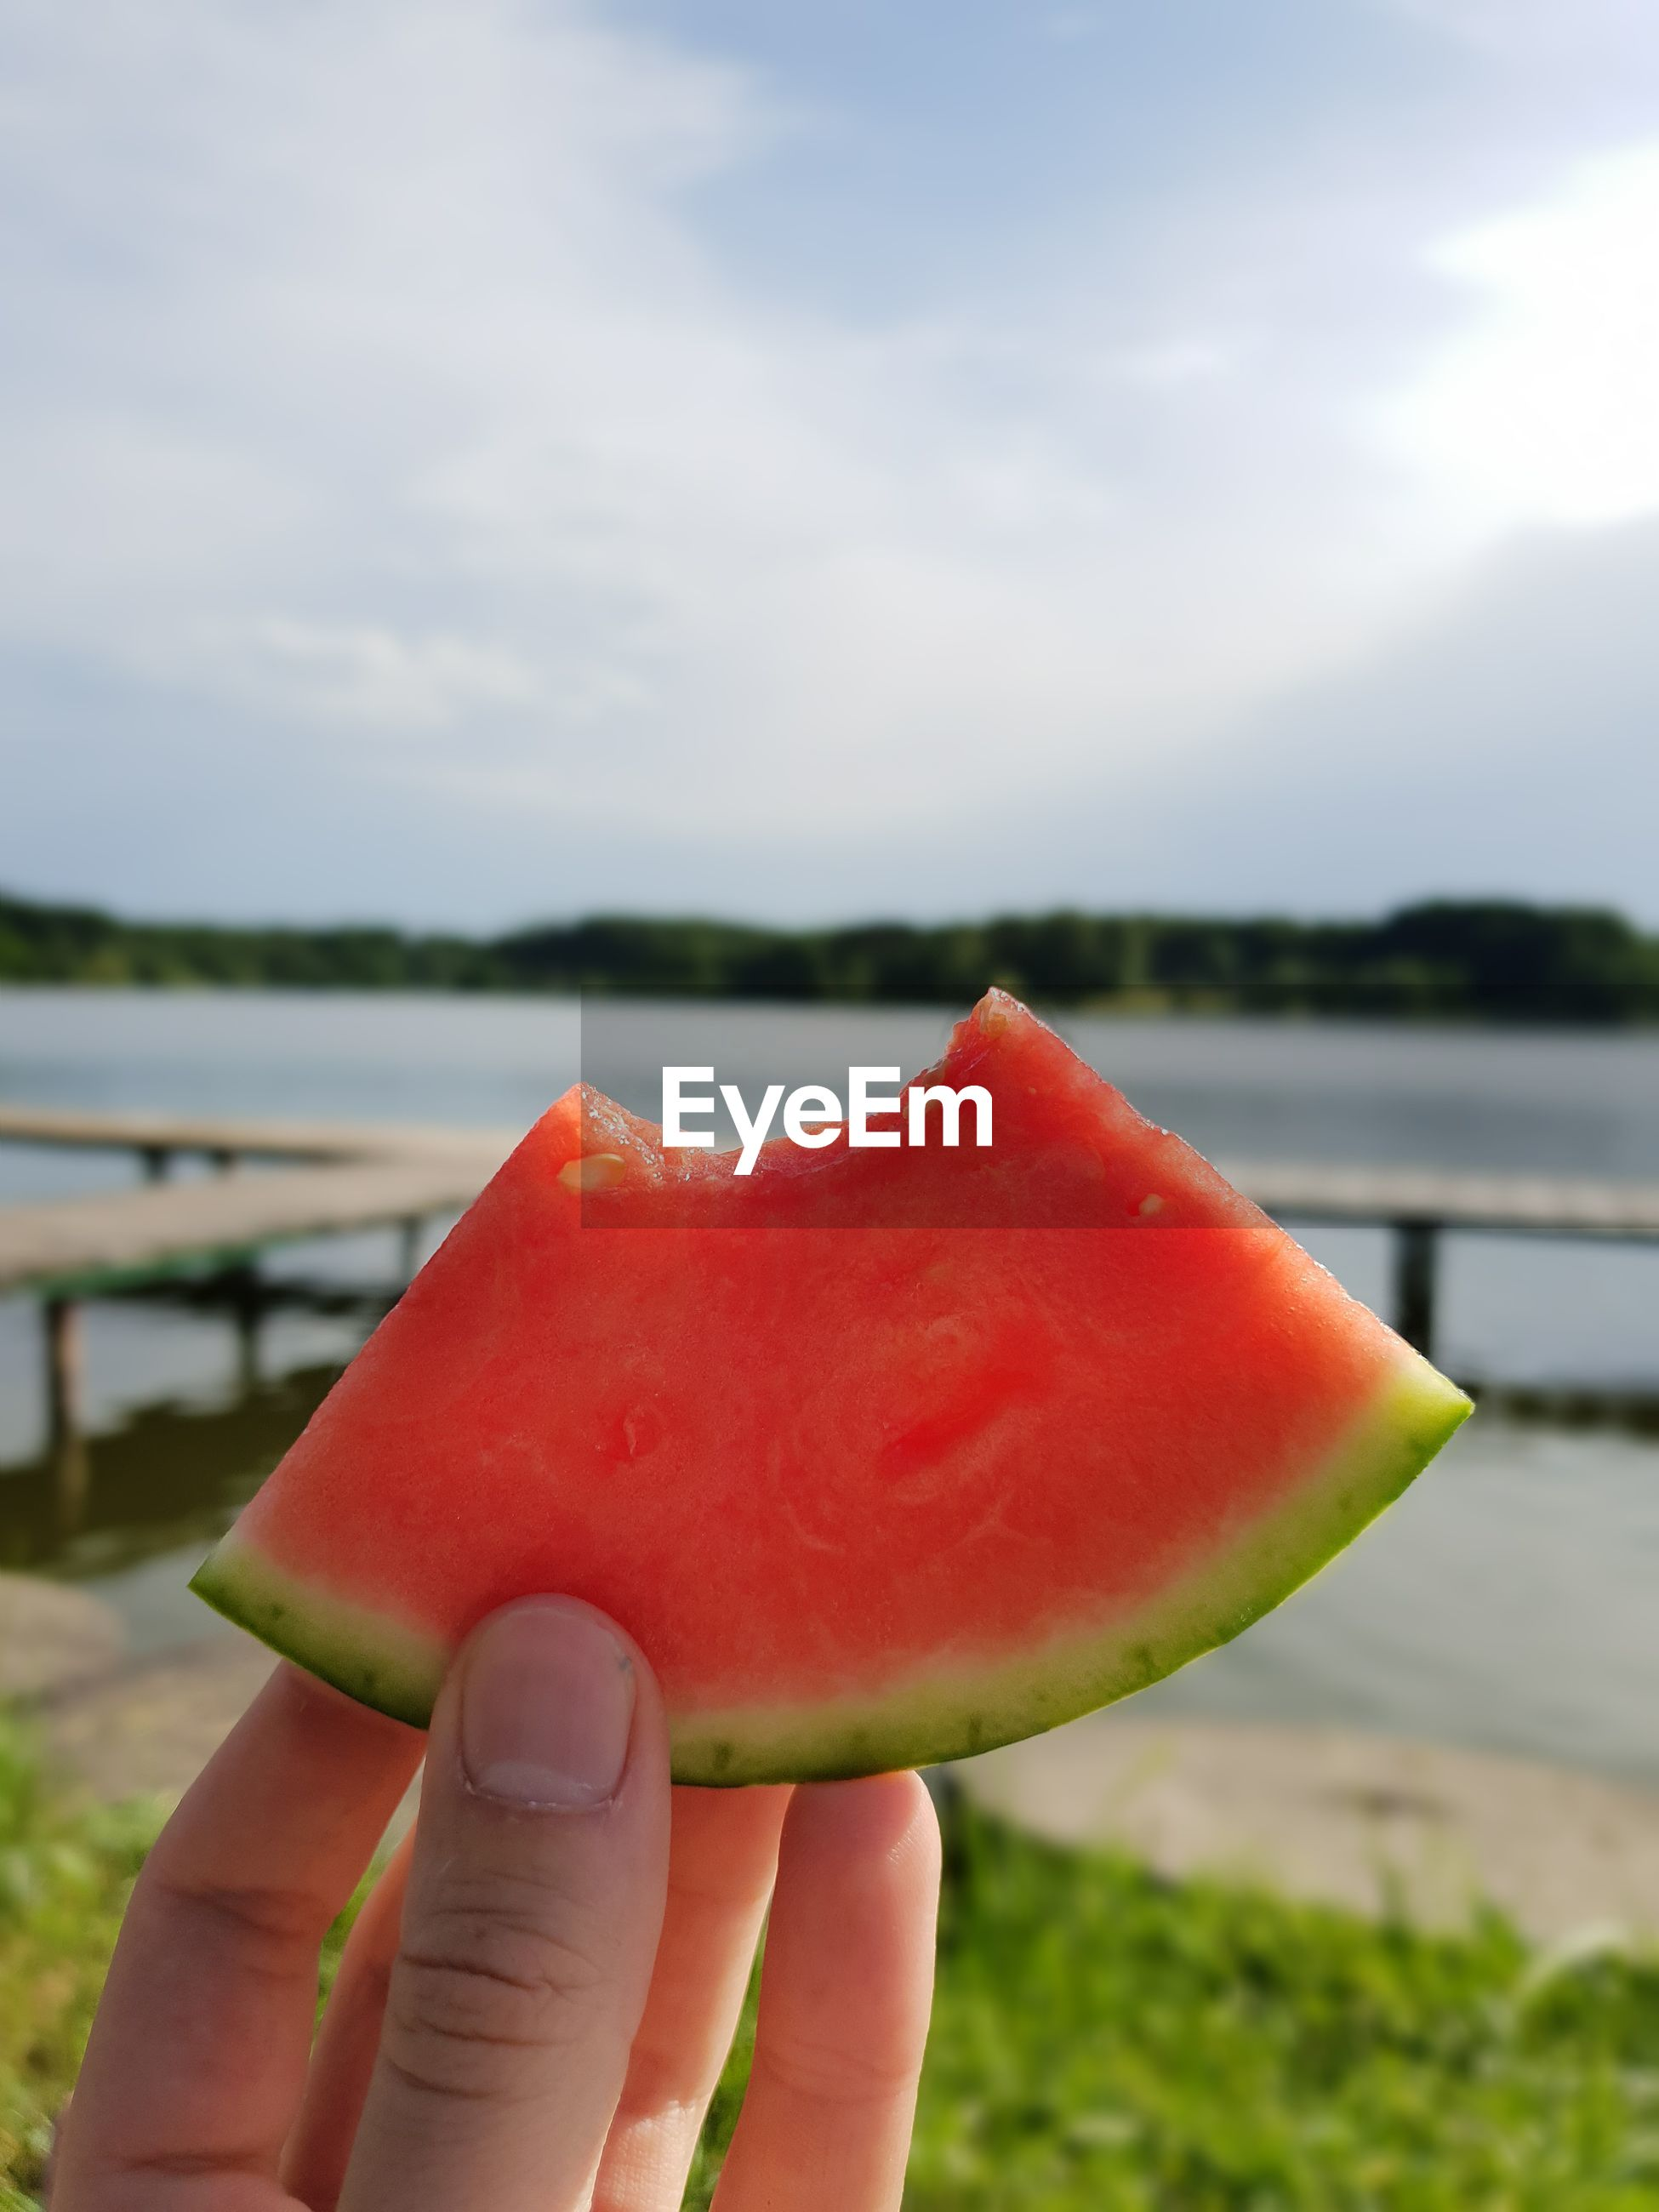 Cropped image of hand holding watermelon against sky